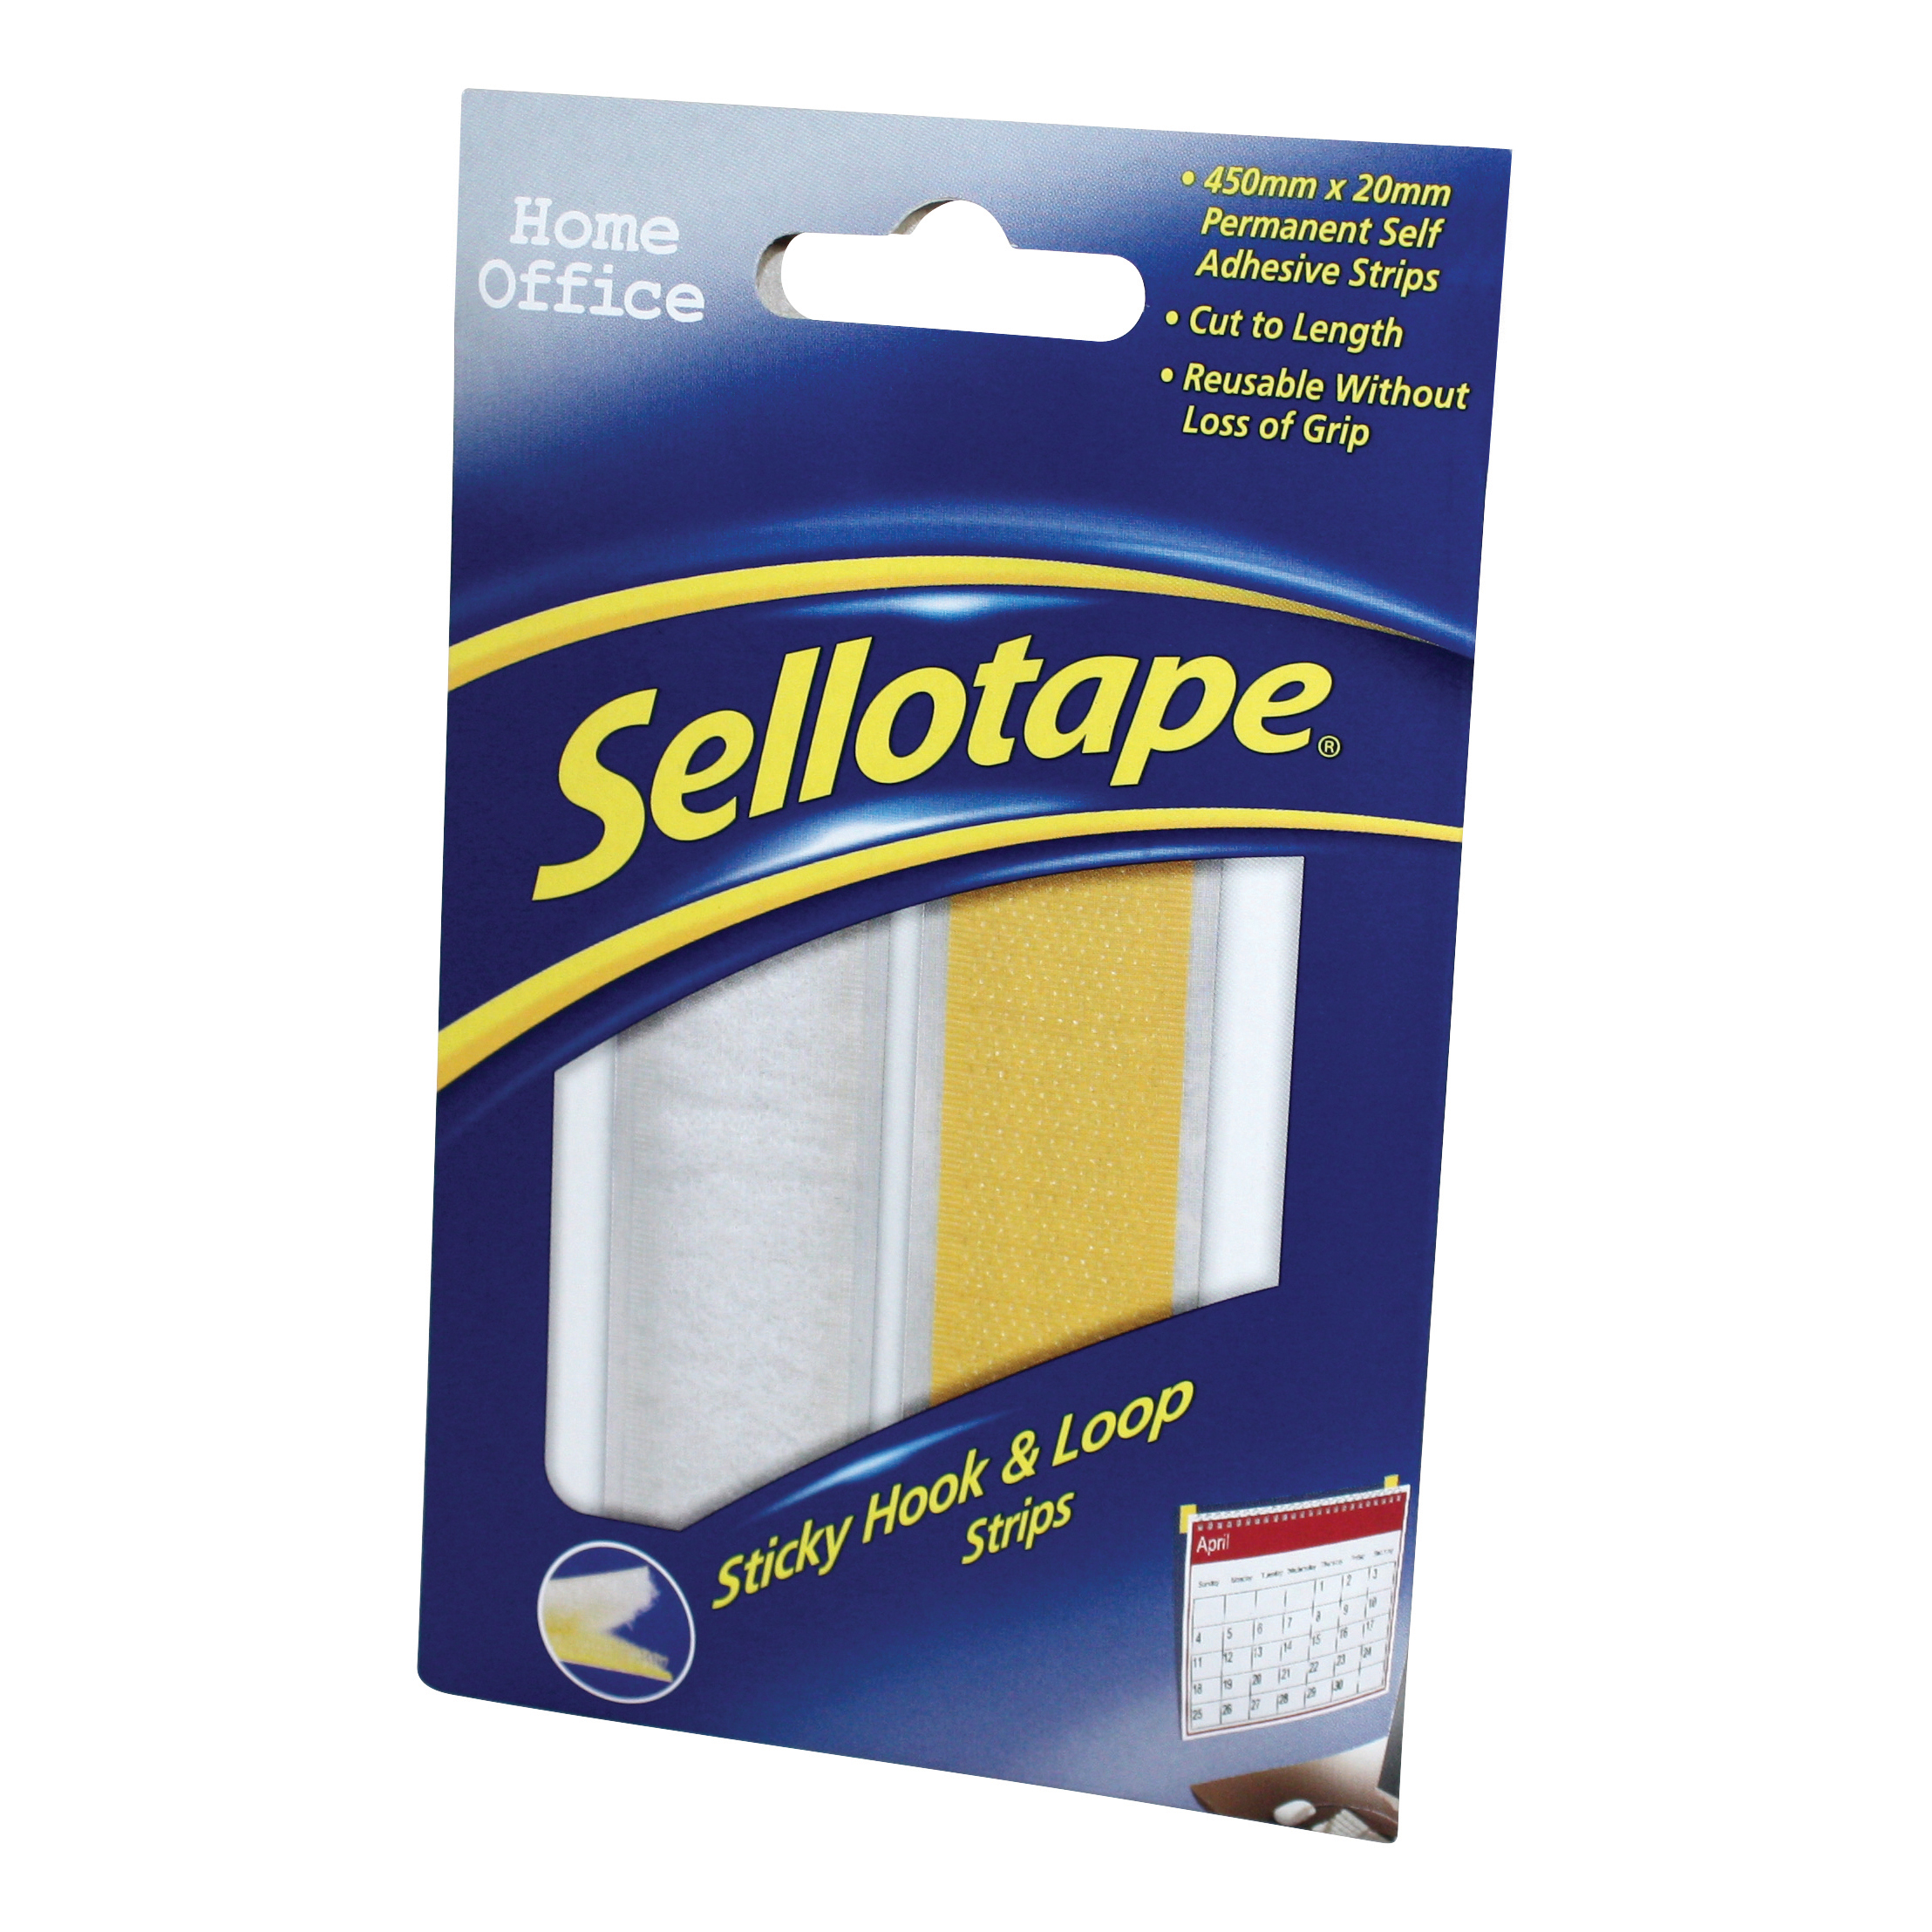 Sellotape Sticky Hook and Loop Strips in a Wallet 20x450mm Ref 1445183